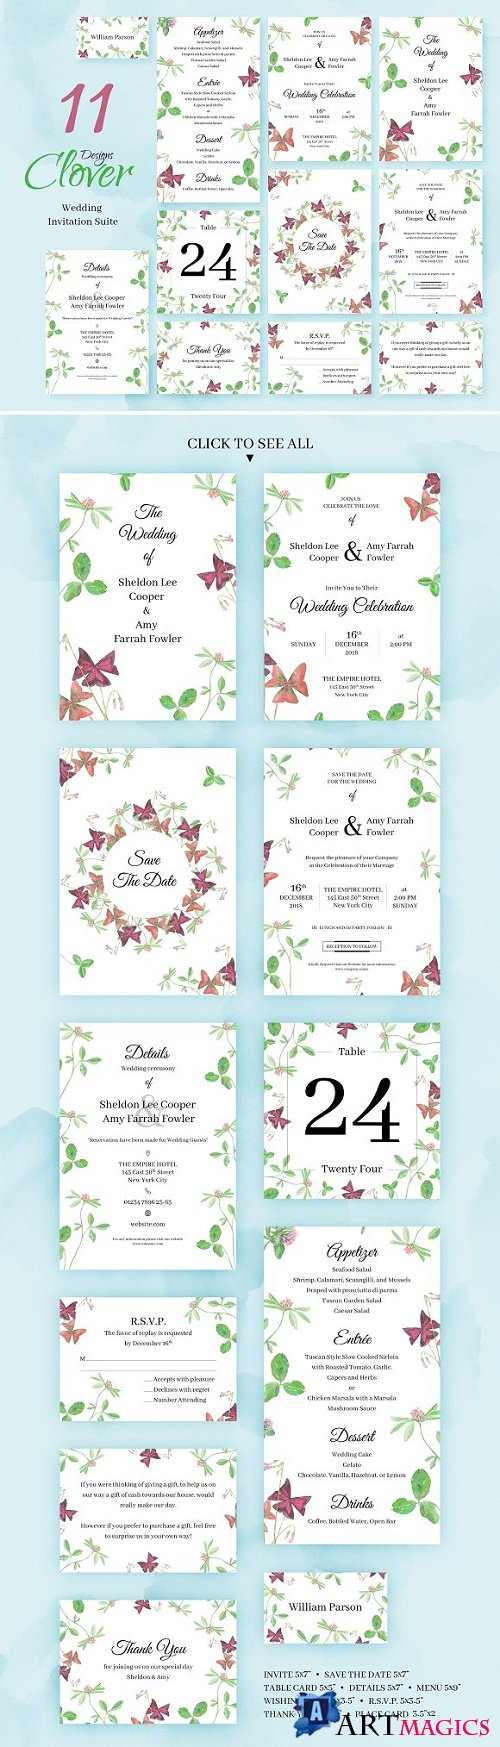 Clover. Wedding Invitation Package 2266511